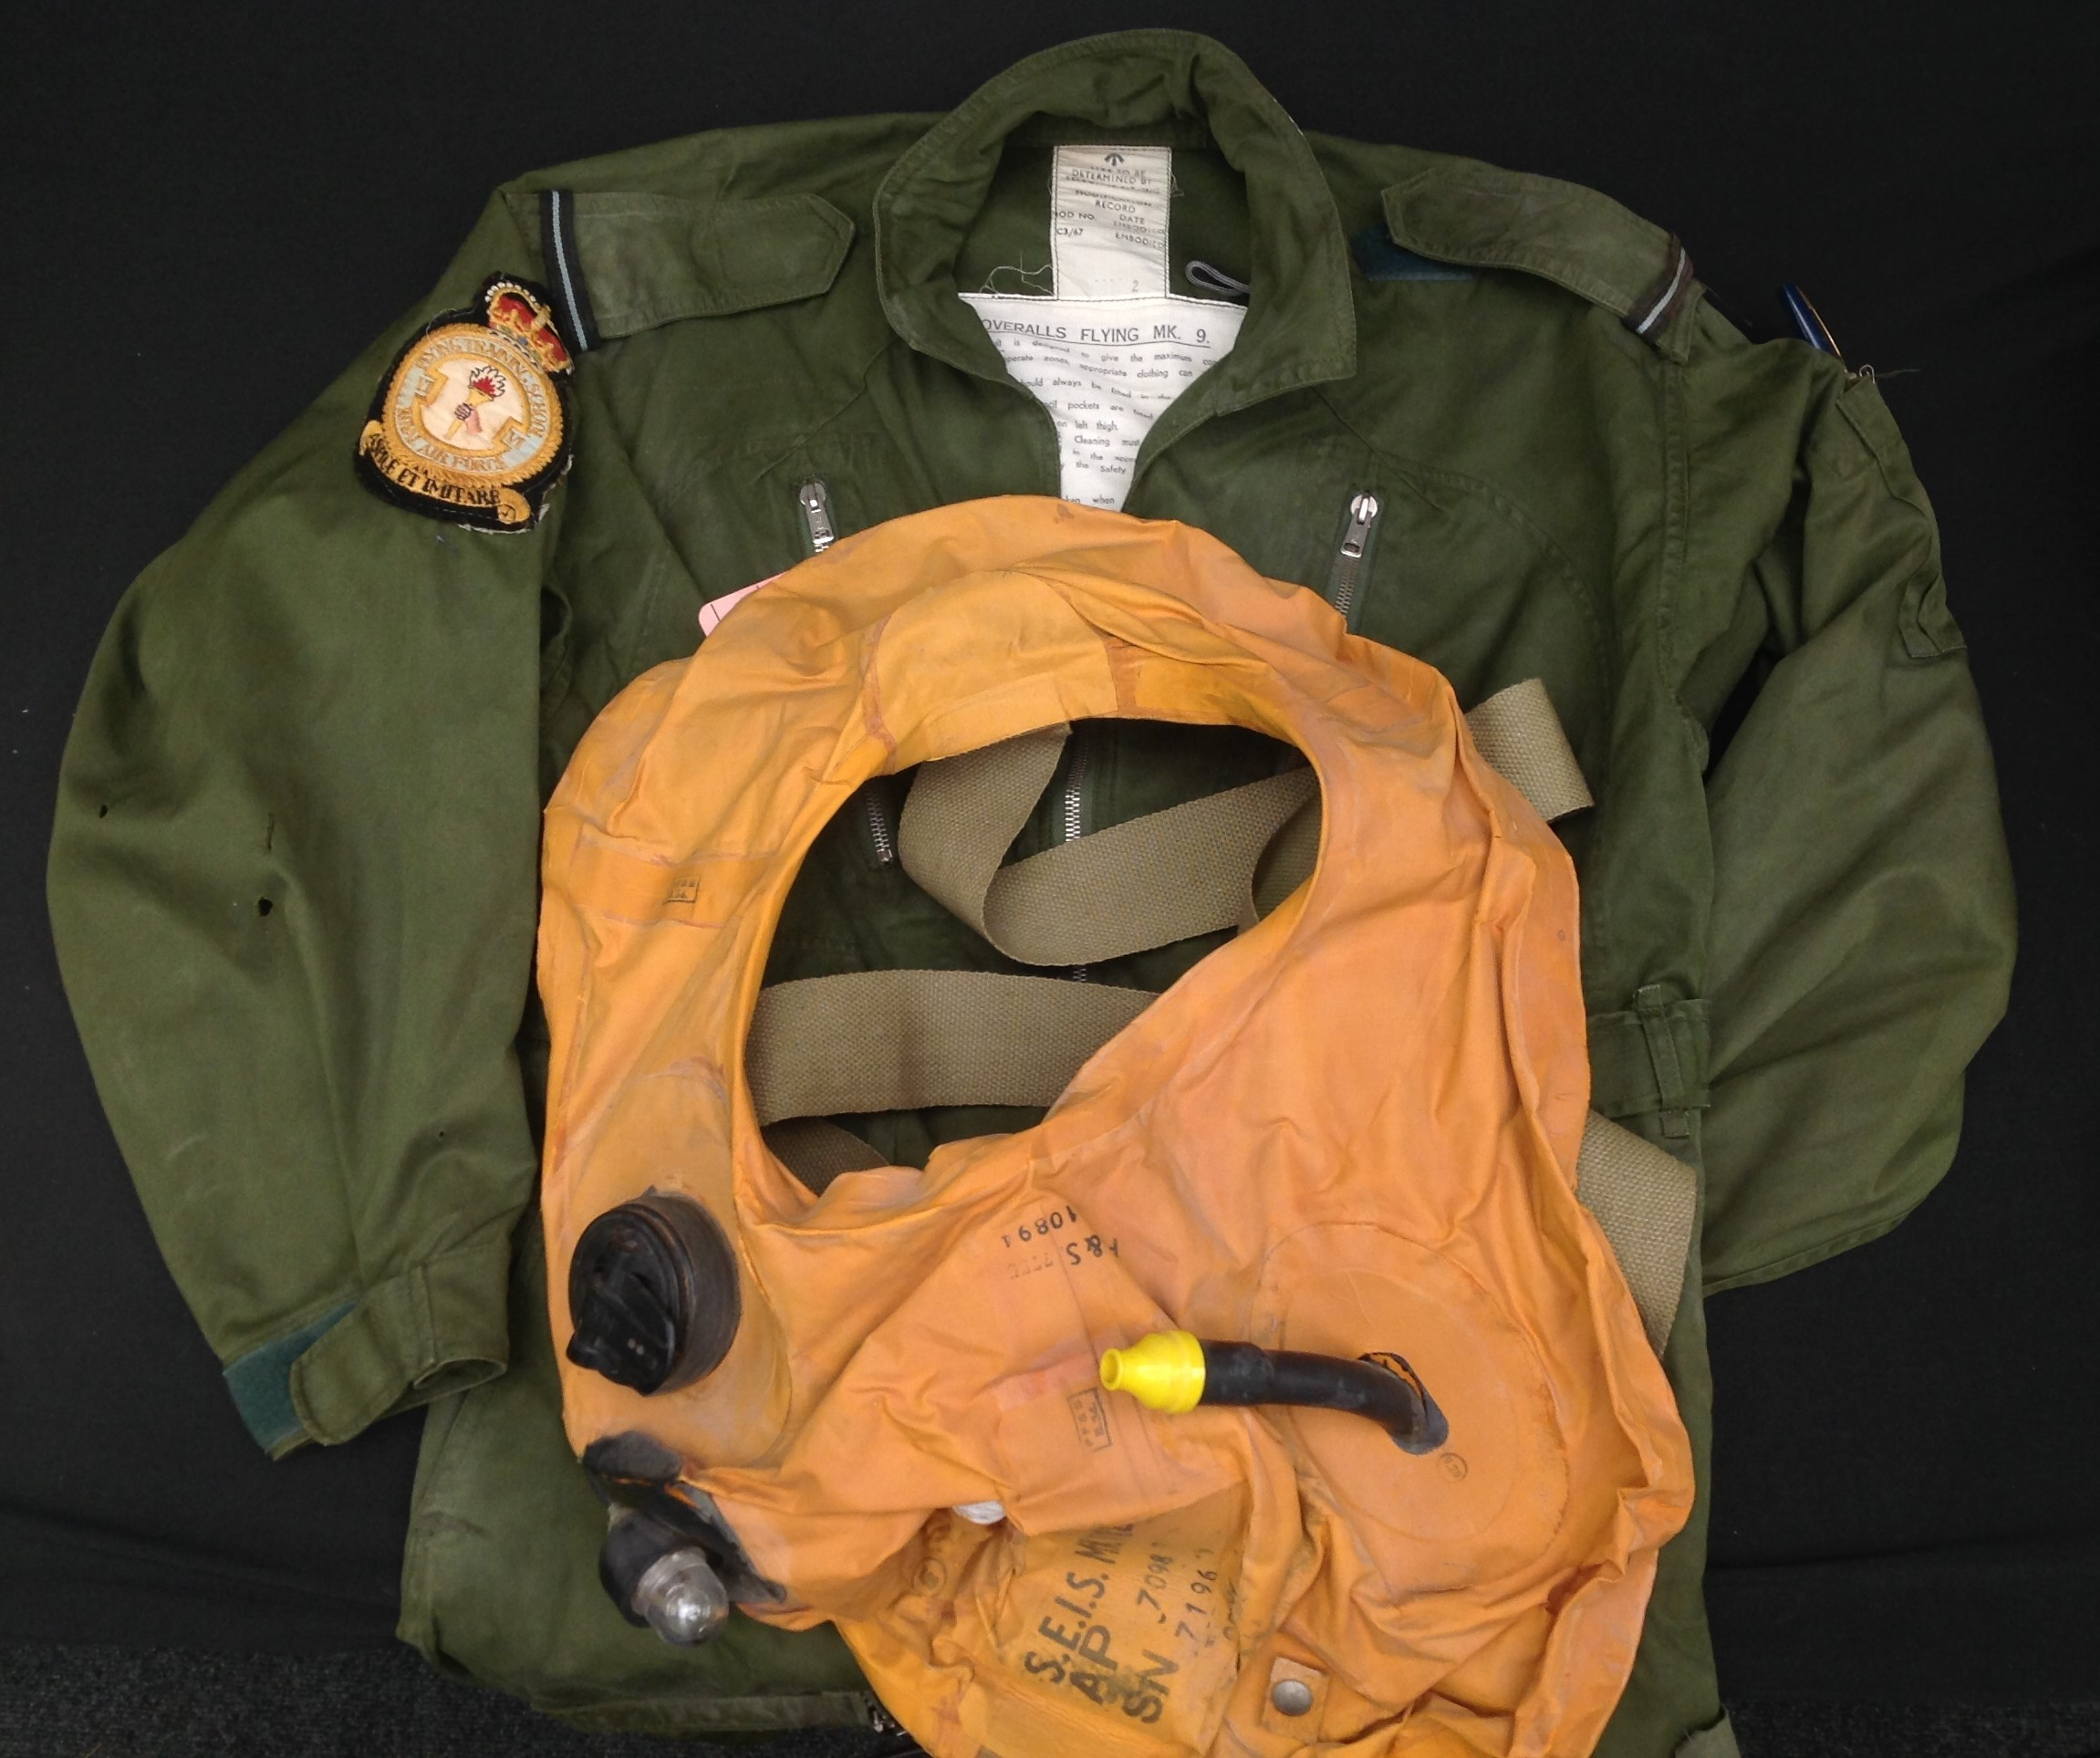 RAF Coverall, Flying MK 9, size 2. Complete with a 1985 map of the Low Countries in pocket and a